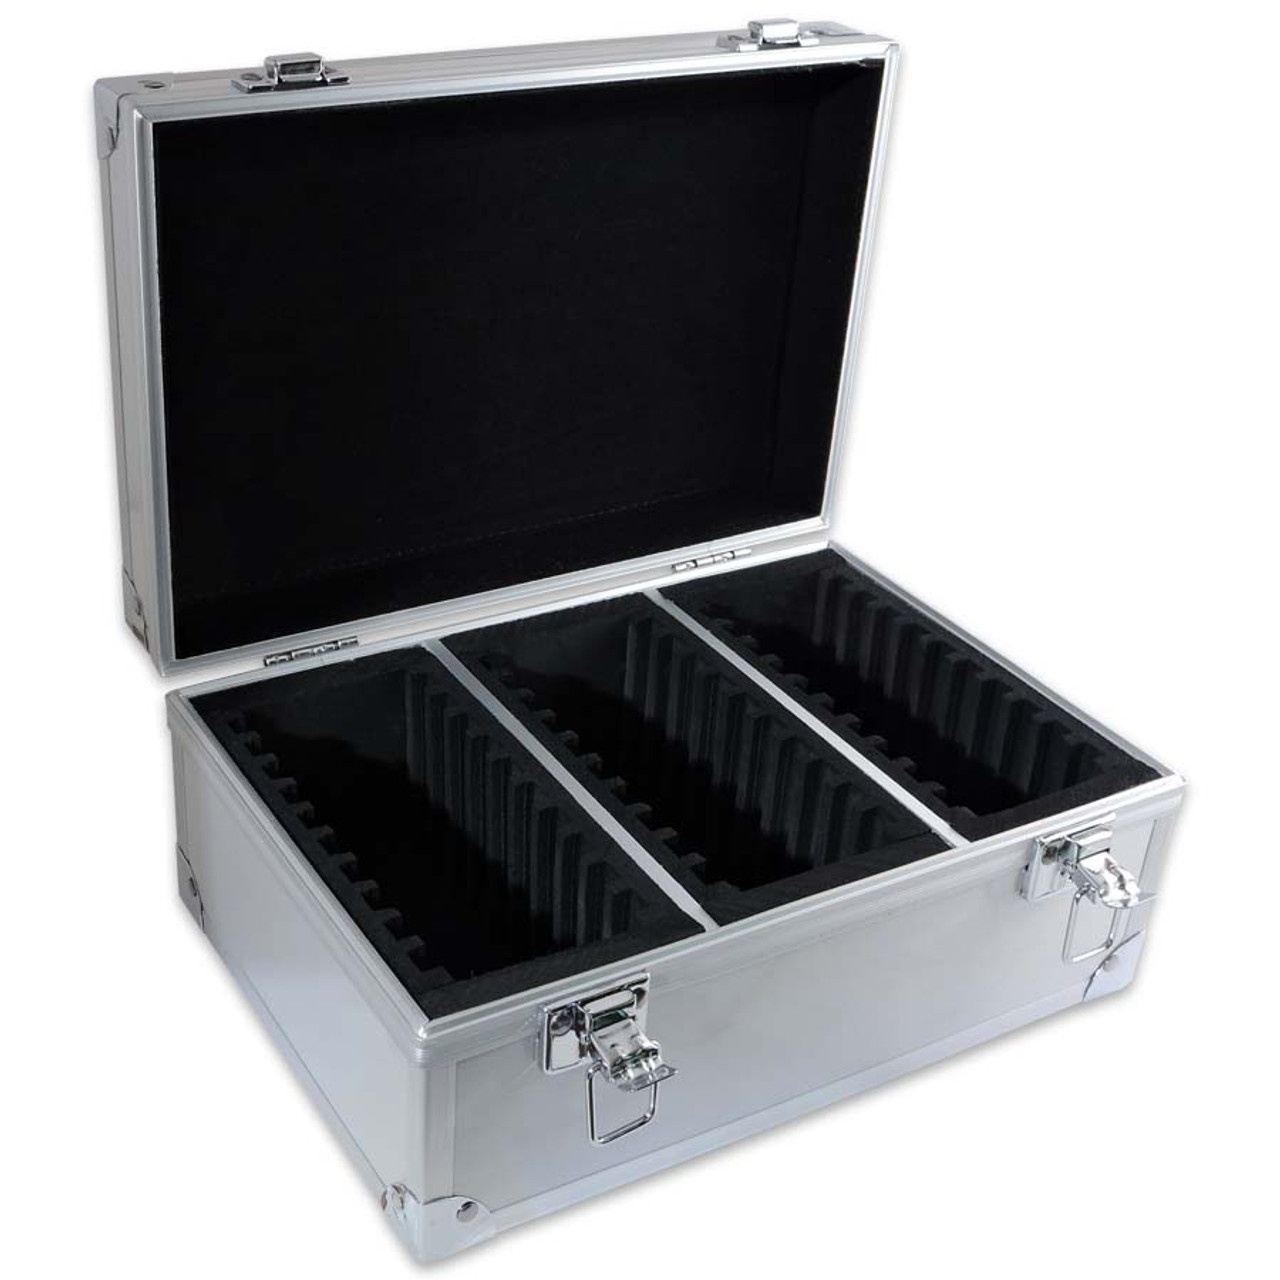 Aluminum Case for Certified Coins, 30 Slot Image 1